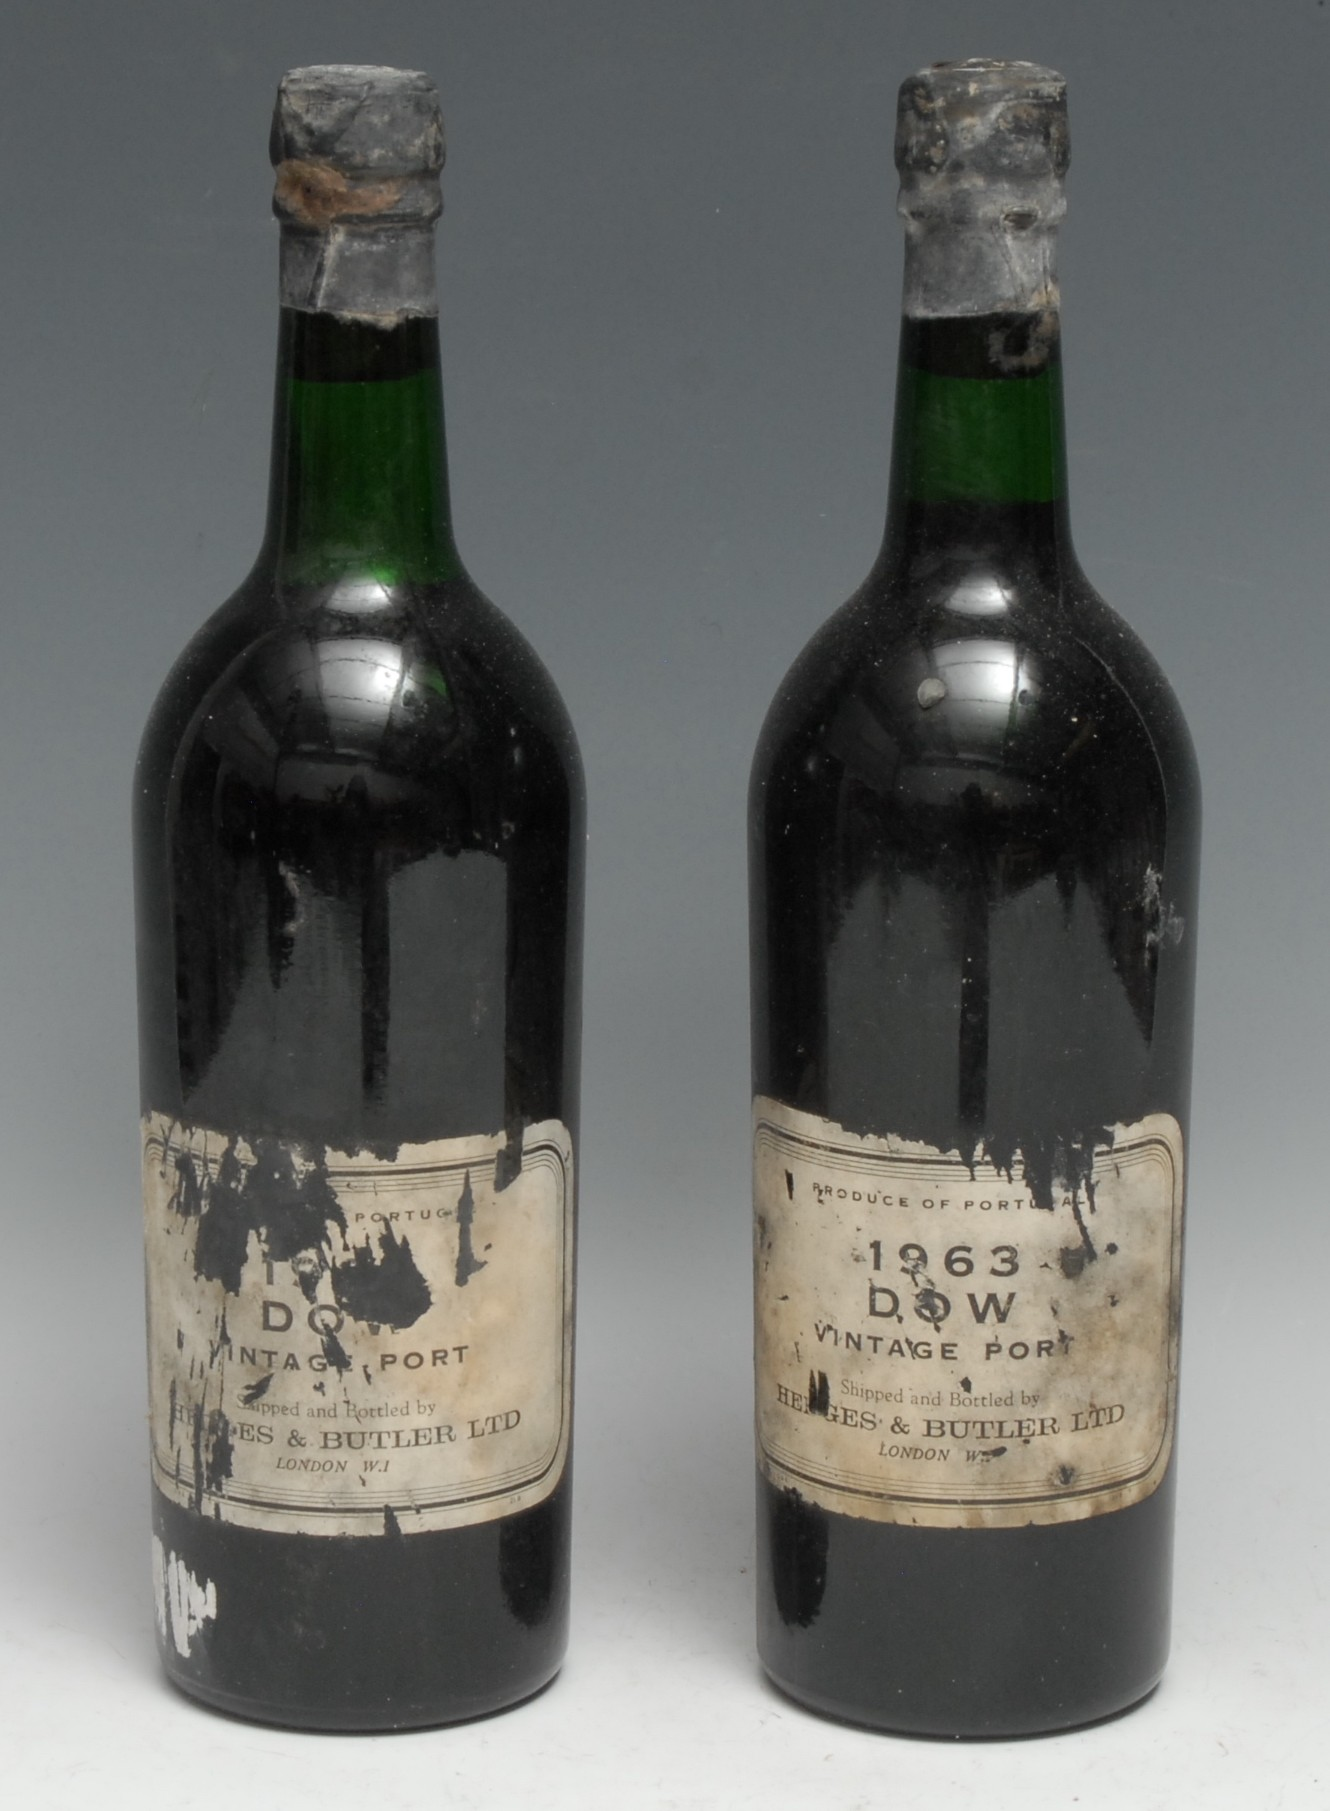 Two bottles of Dow 1963 Vintage Port, Shipped and Bottled by Hedges & Butler Ltd, [c. 75cl],